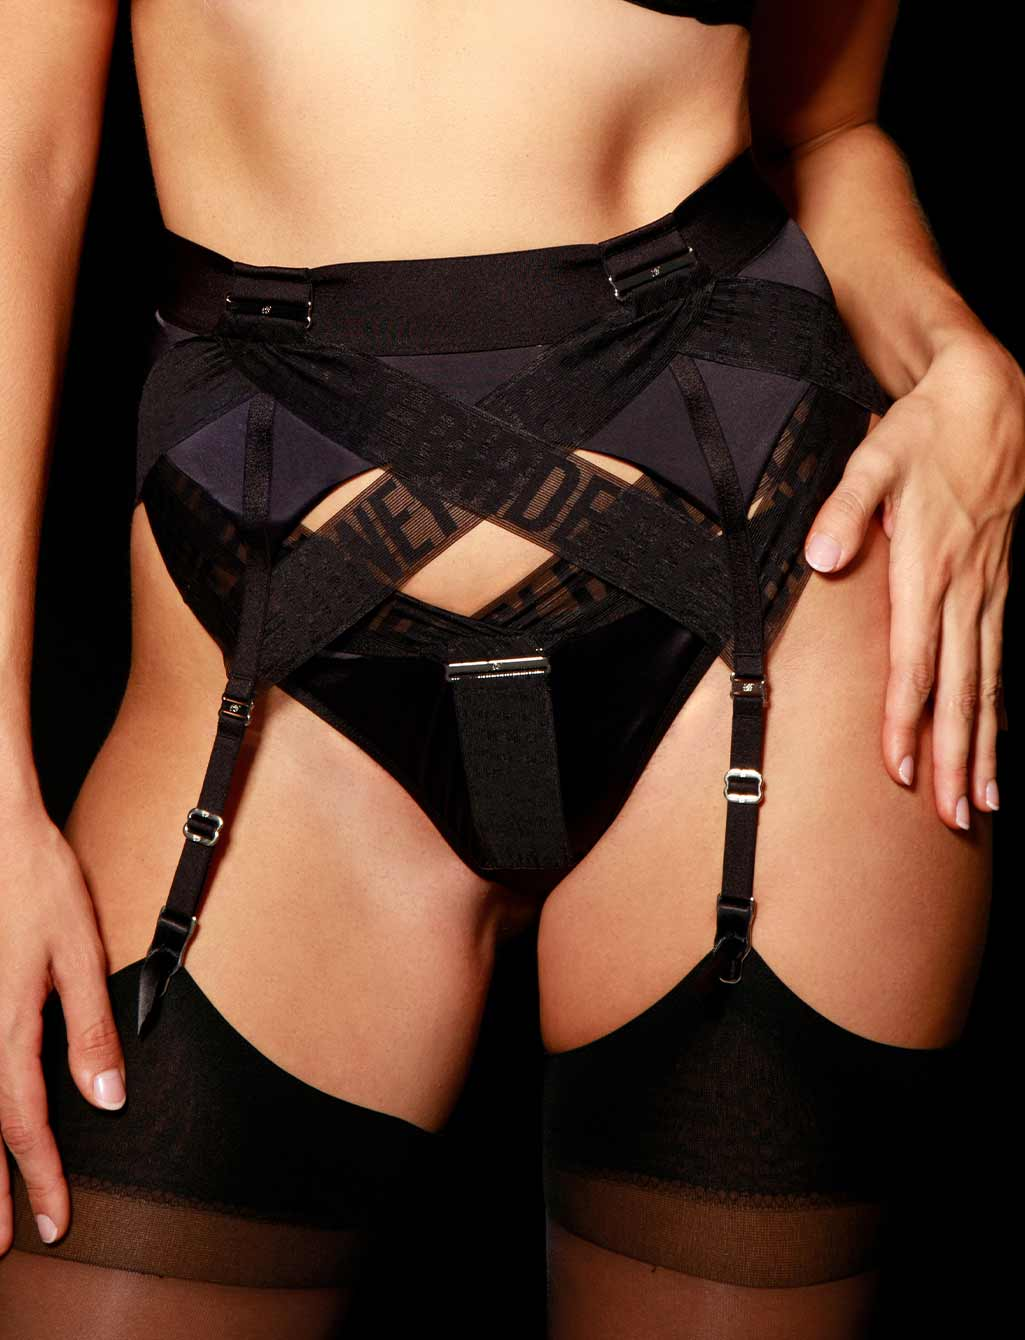 Blake Black Suspender - Shop  Lingerie | Honey Birdette